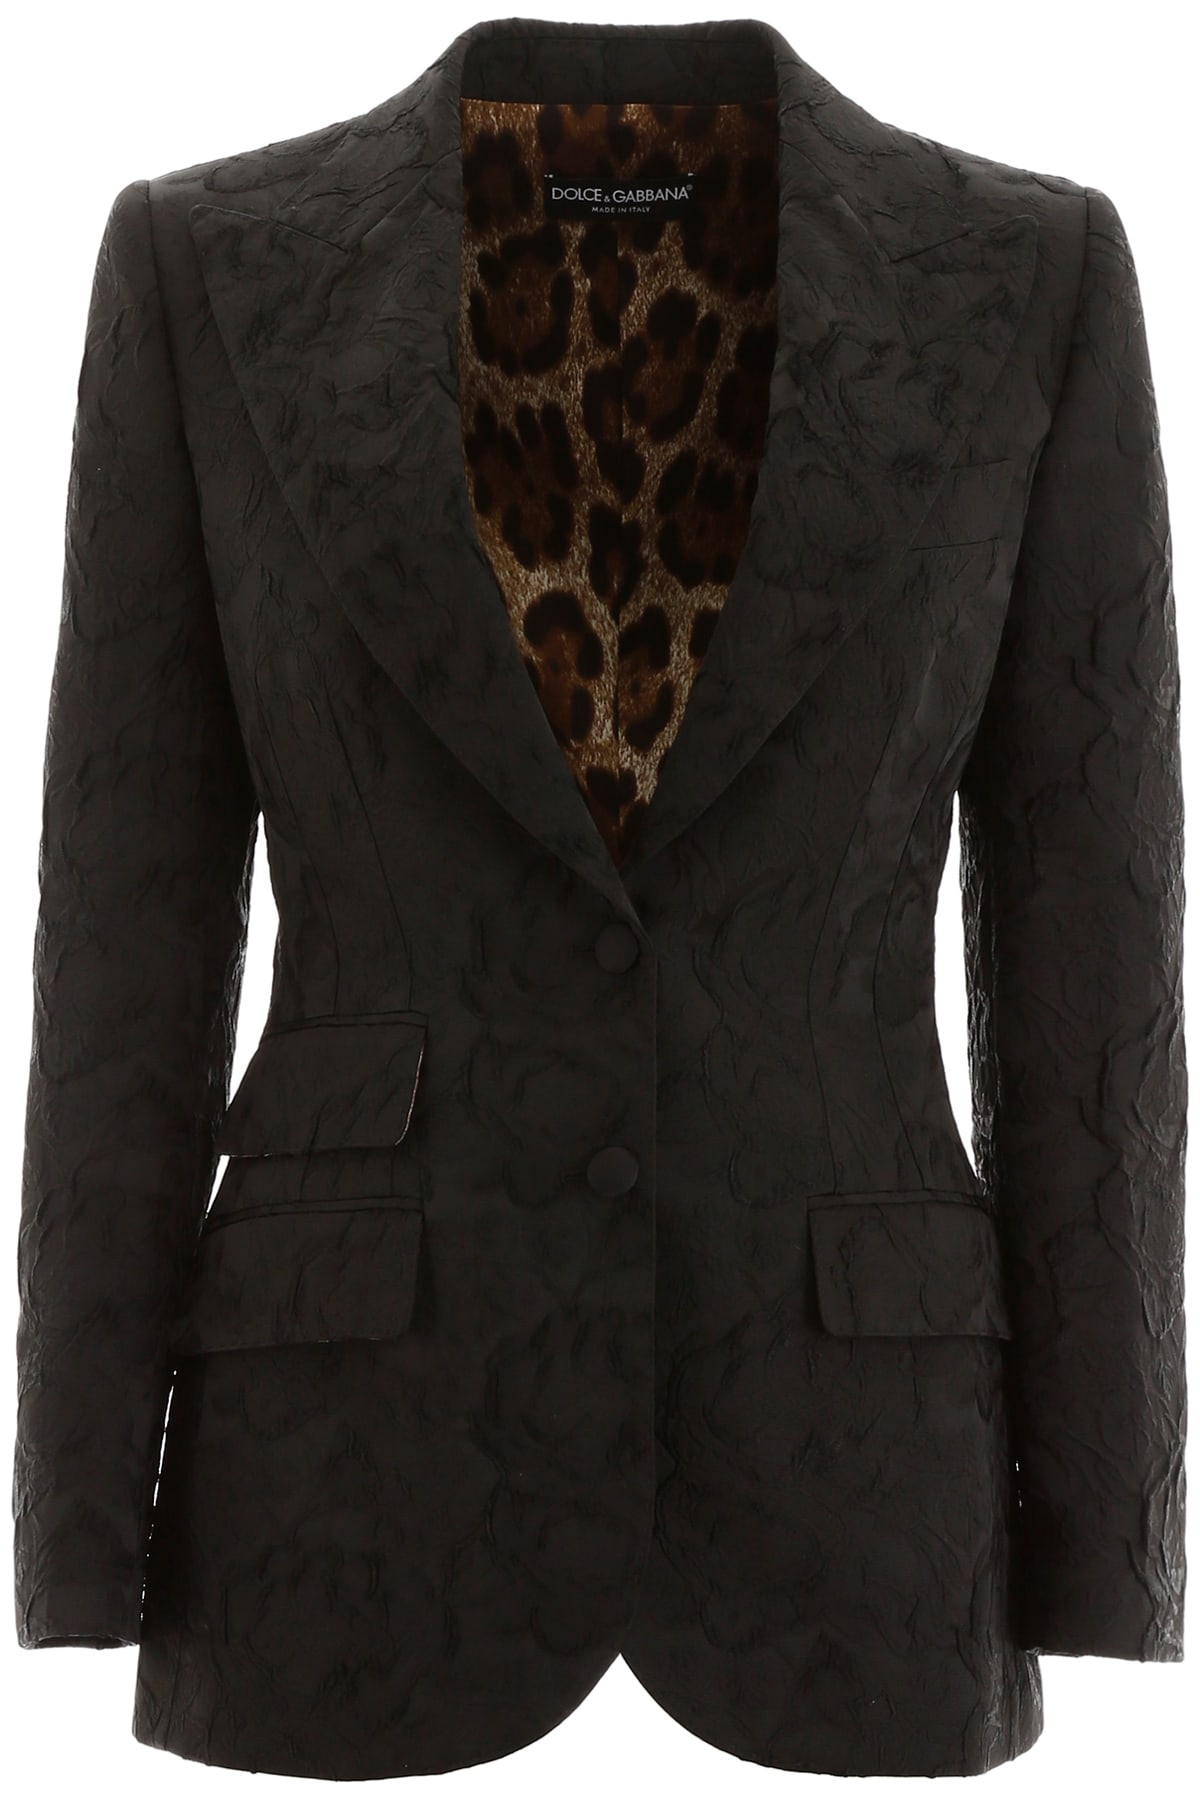 Dolce & Gabbana Turtlington Jacket